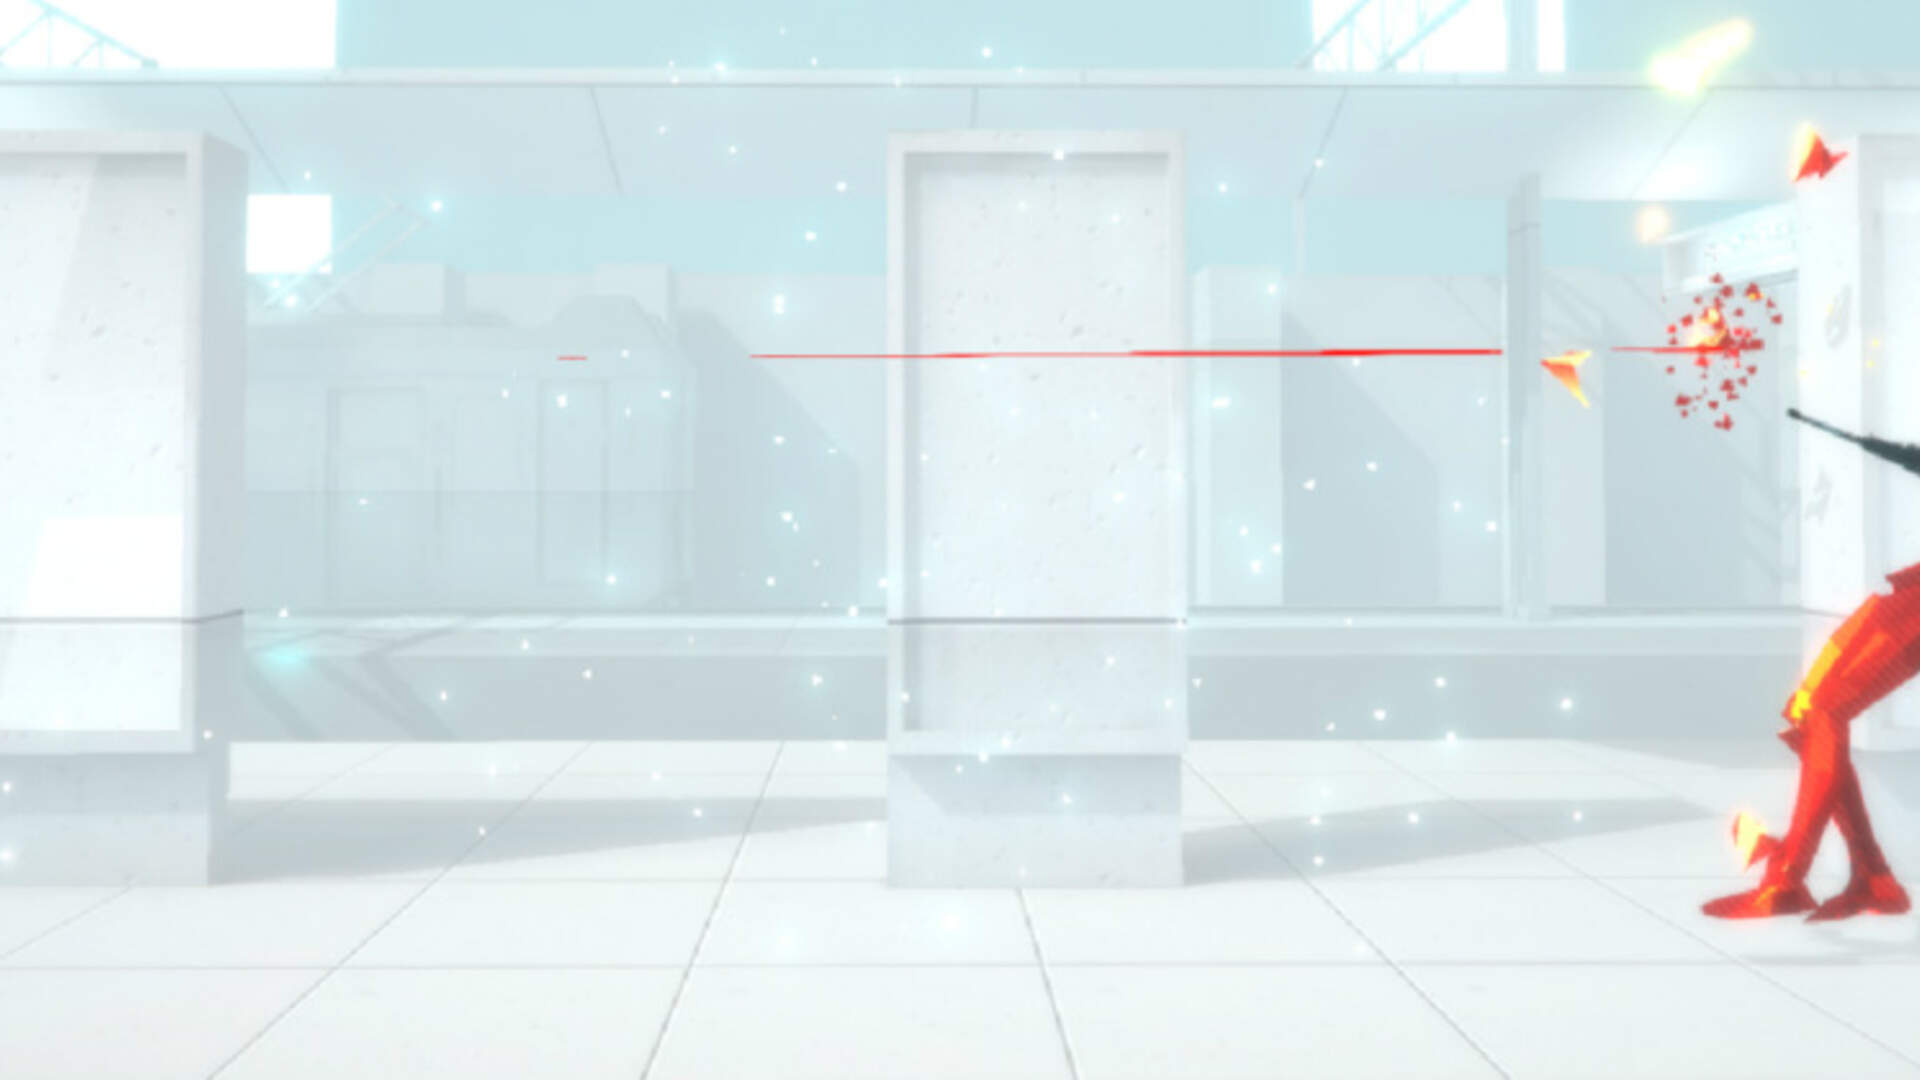 Superhot PC Review: A Slow-Motion Ballet of Murder and Mayhem